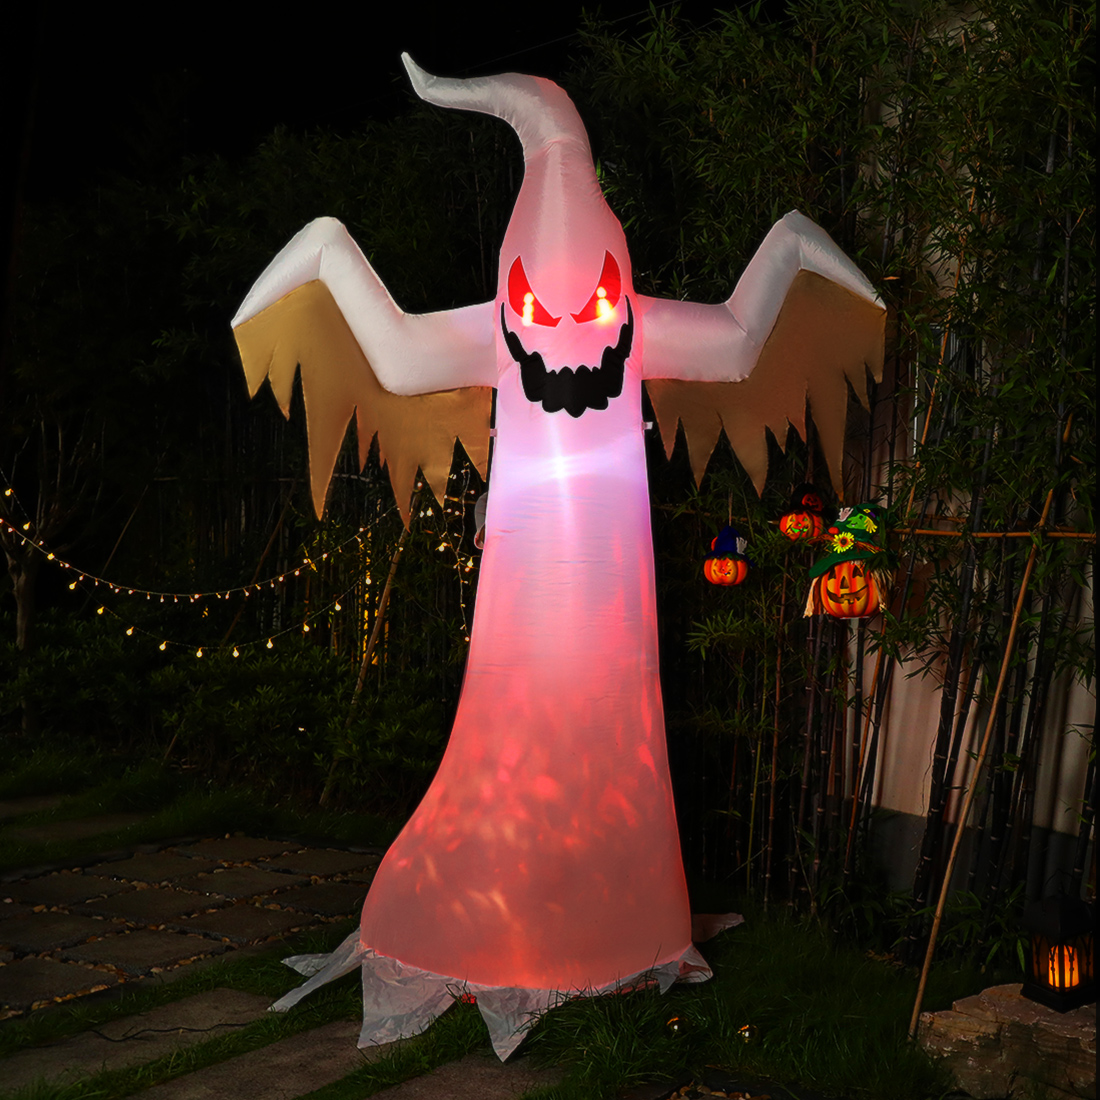 Halloween Inflatable White Ghost with Red Rotating Led Lights Blow up Outdoor Yard Decoration 8ft - Walmart.com